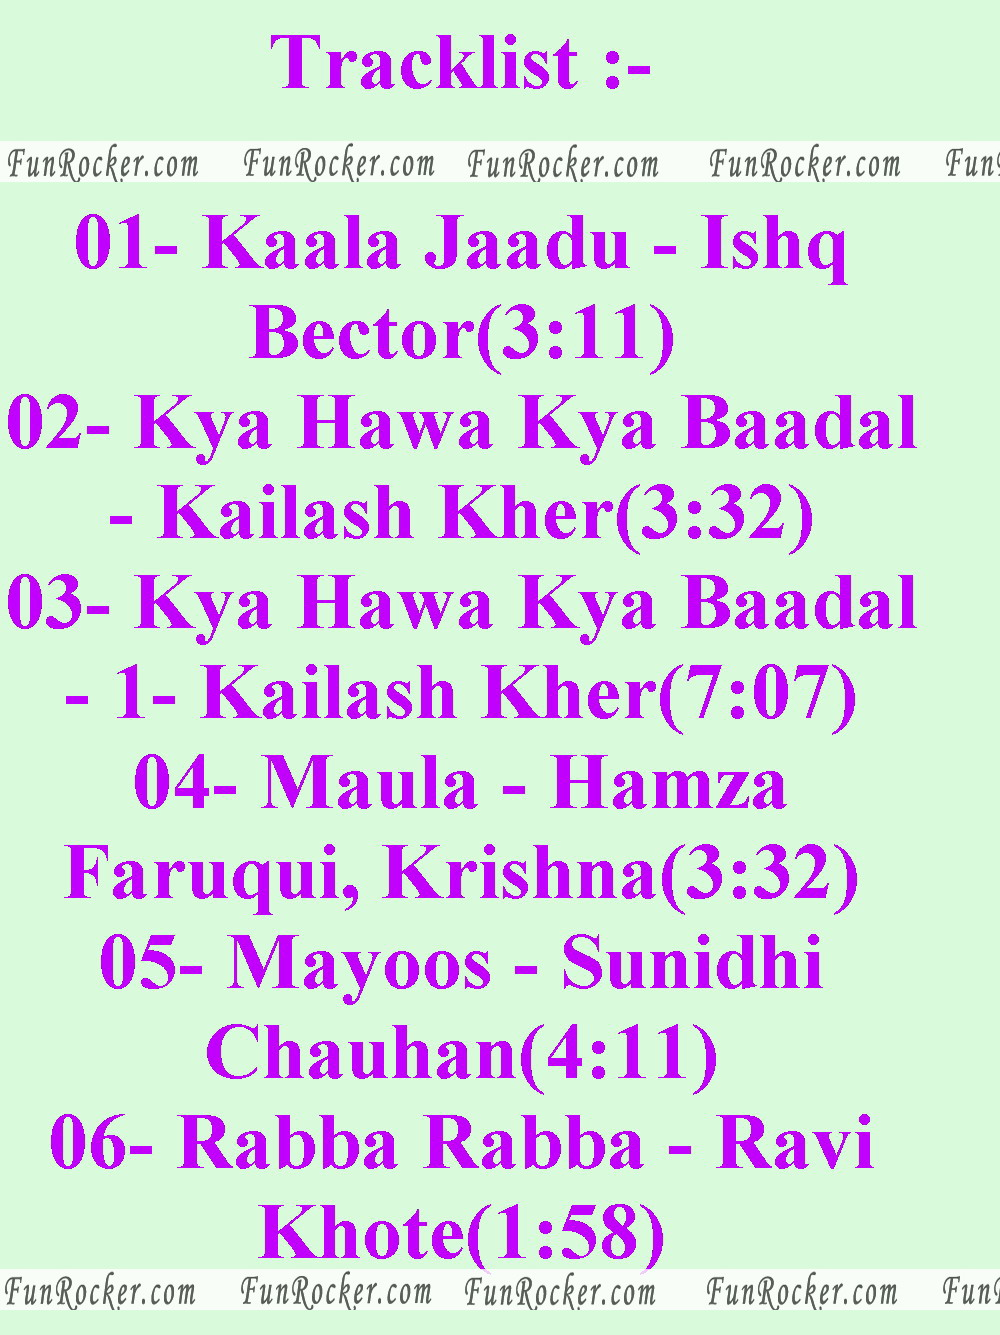 Allah Ke Banday Official Track List